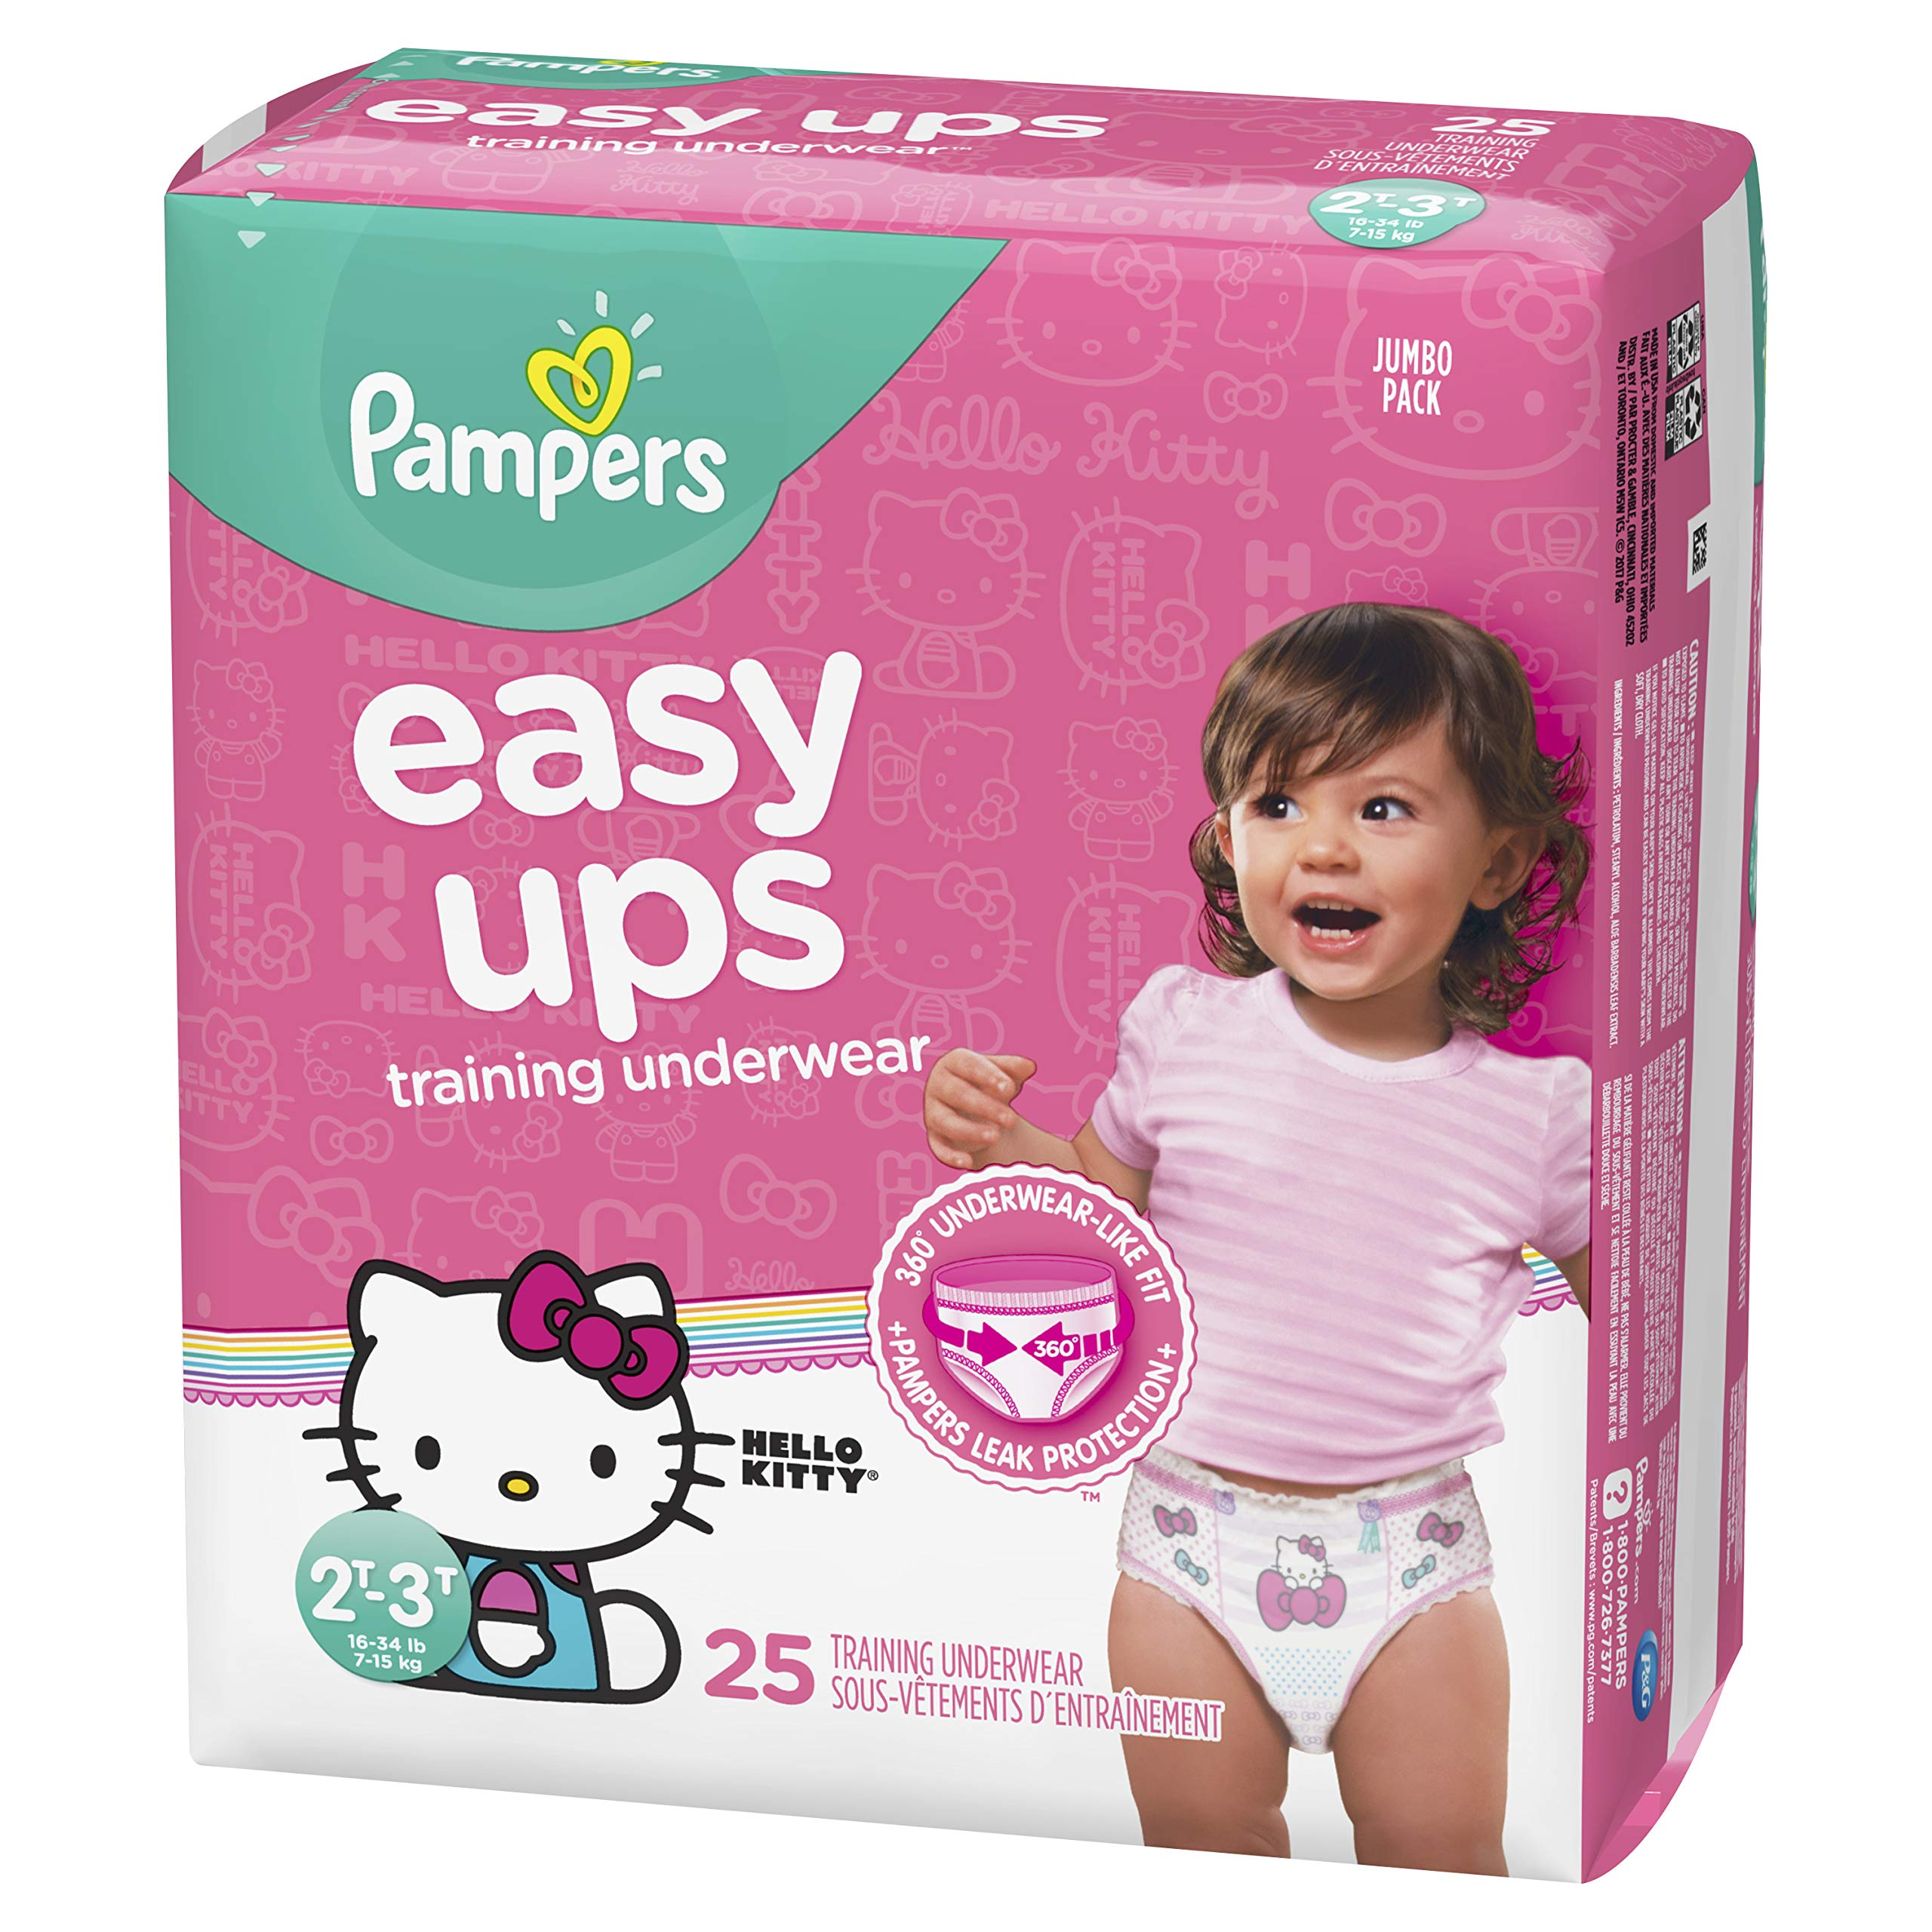 Pampers Easy Ups Pull On Disposable Training Diaper for Girls, Size 4 (2T-3T), Jumbo Pack, 25 Count